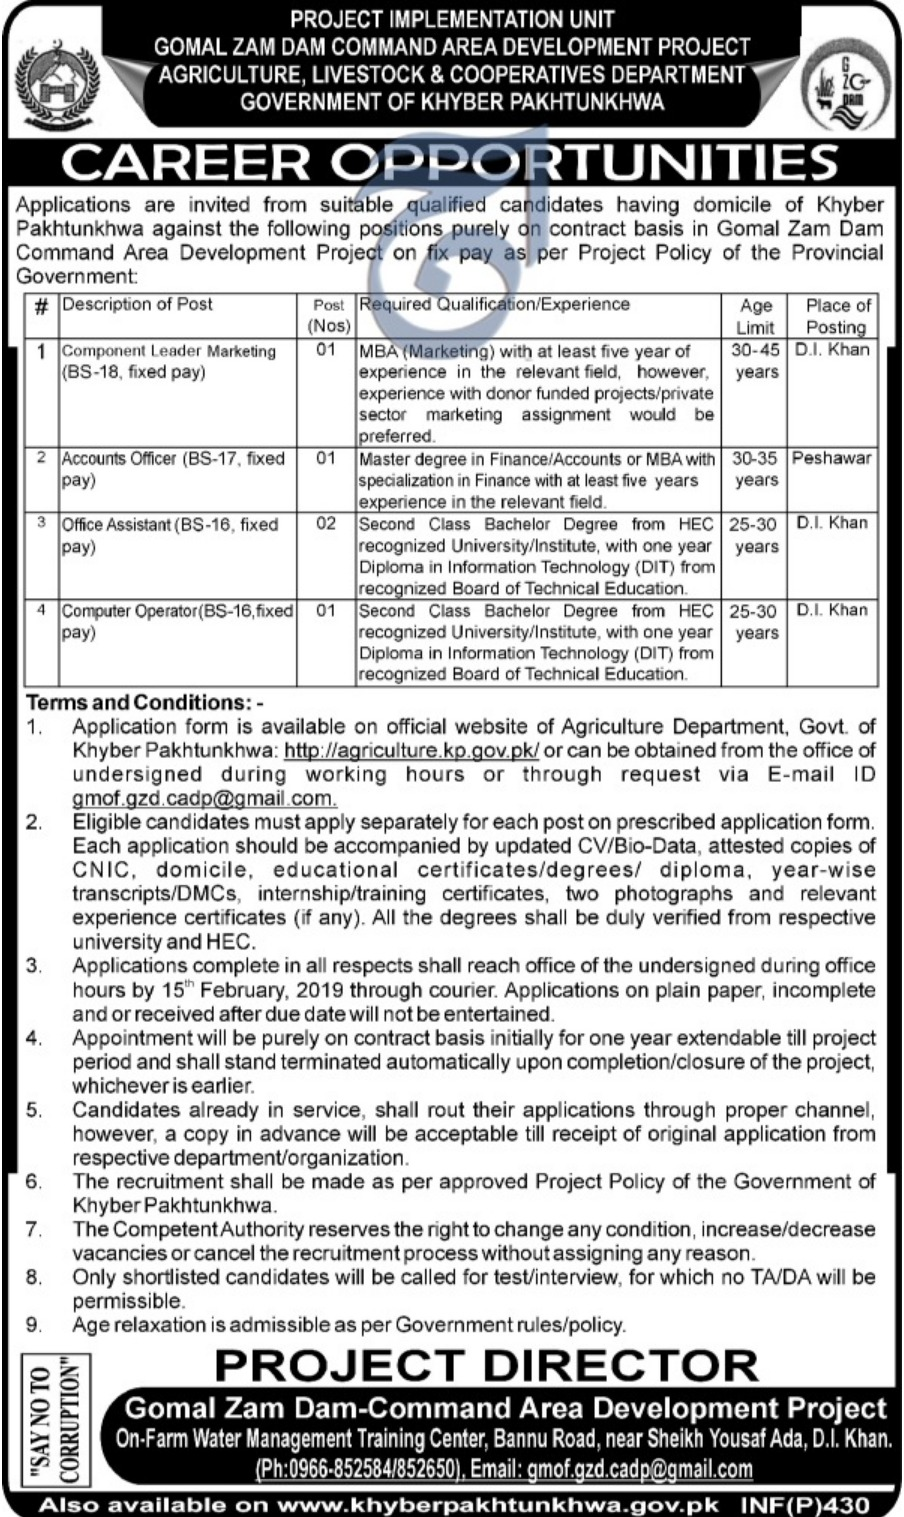 Agriculture Livestock & Cooperatives Department Peshawar KPK Jobs 2019